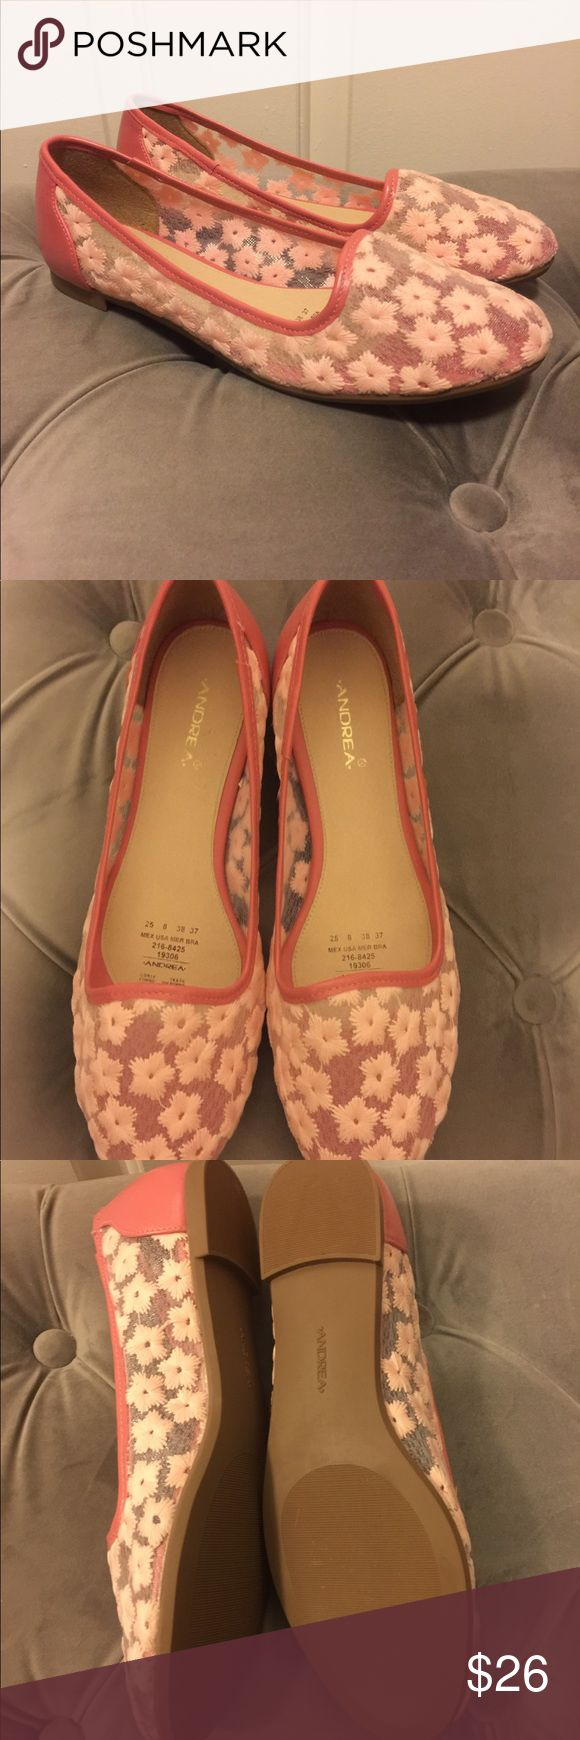 Pink flower lace flats Brand new. Hand made from Mexico 🇲🇽 too small for me. Stunning flats for any occasion. Andrea Jovine Shoes Flats & Loafers